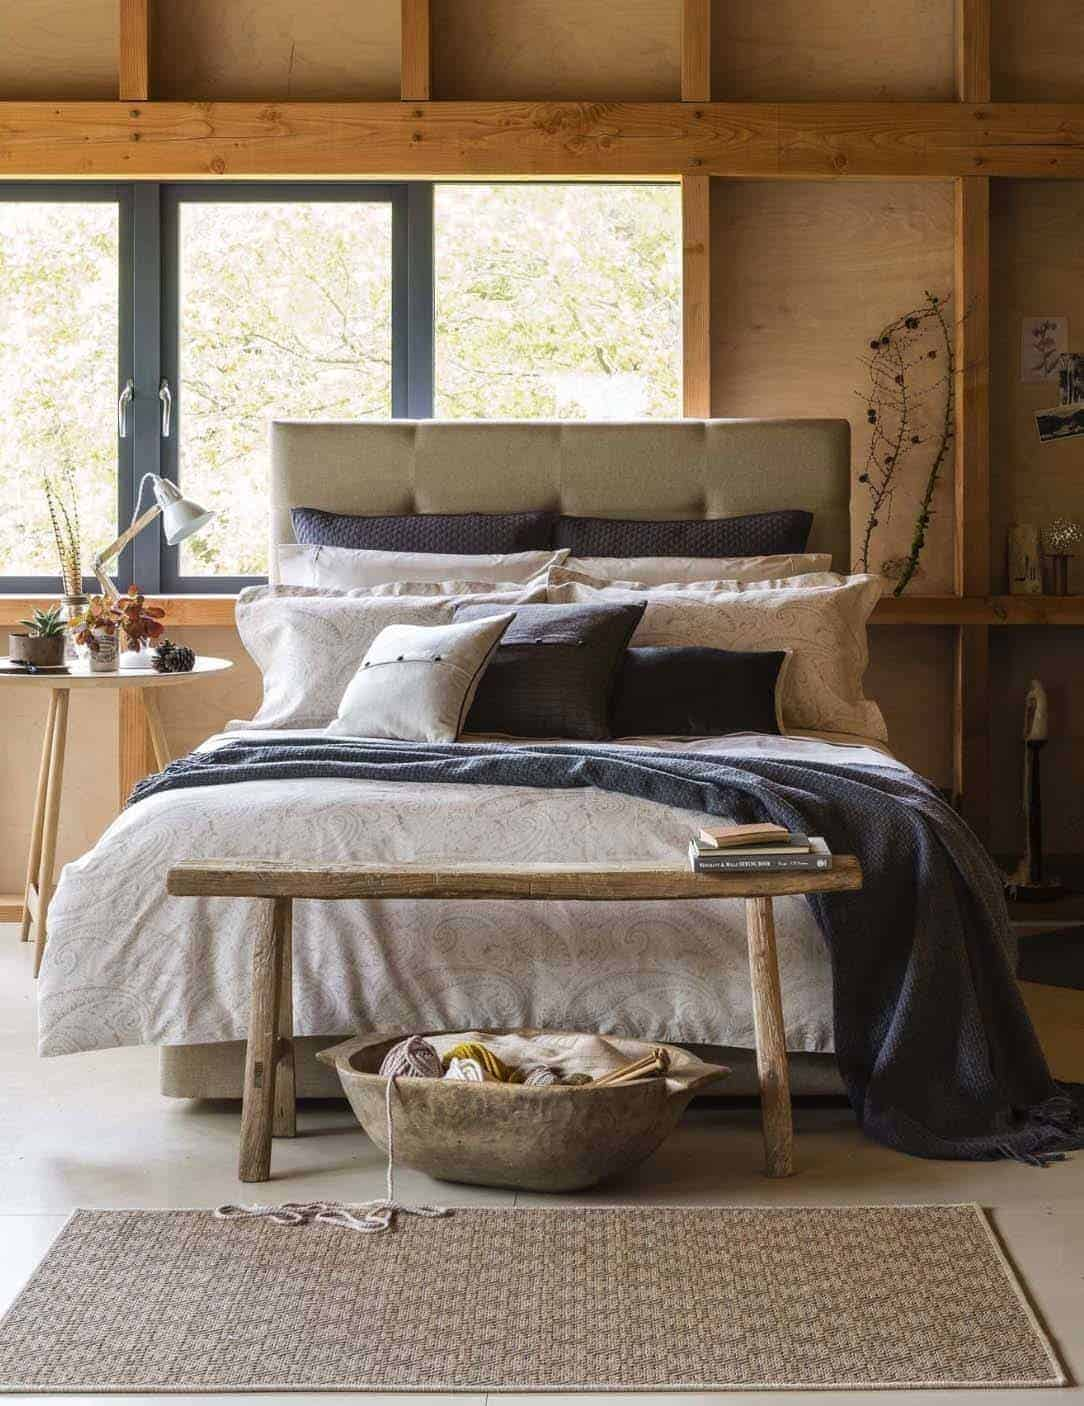 10 Cozy Ways to Create the Ultimate Hygge Bedroom 2